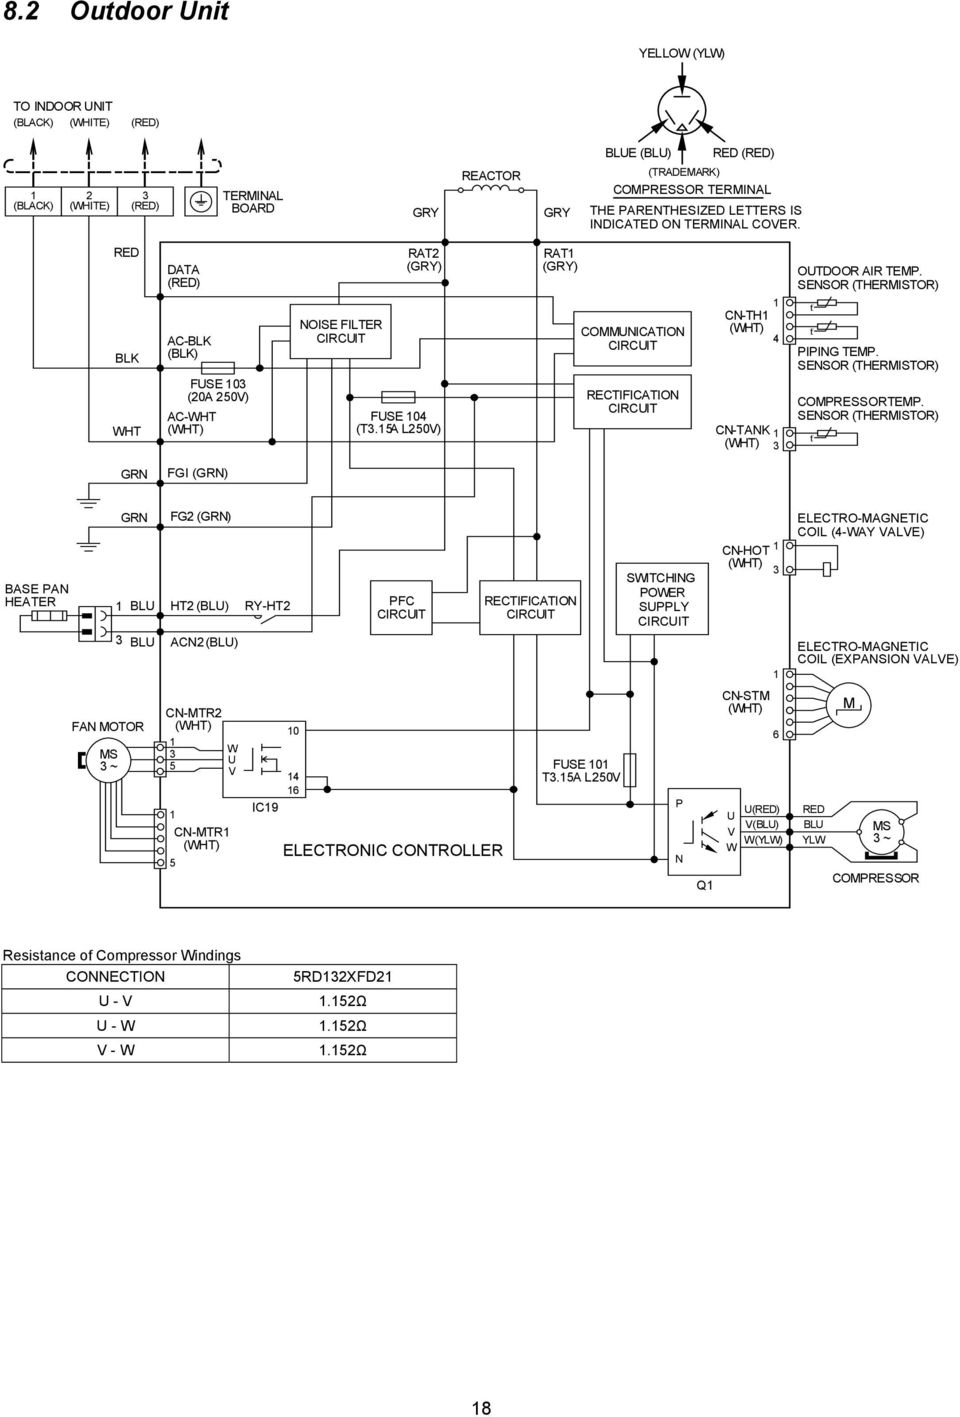 Honeywell Ra832a Relay Wiring Diagram On Images Free